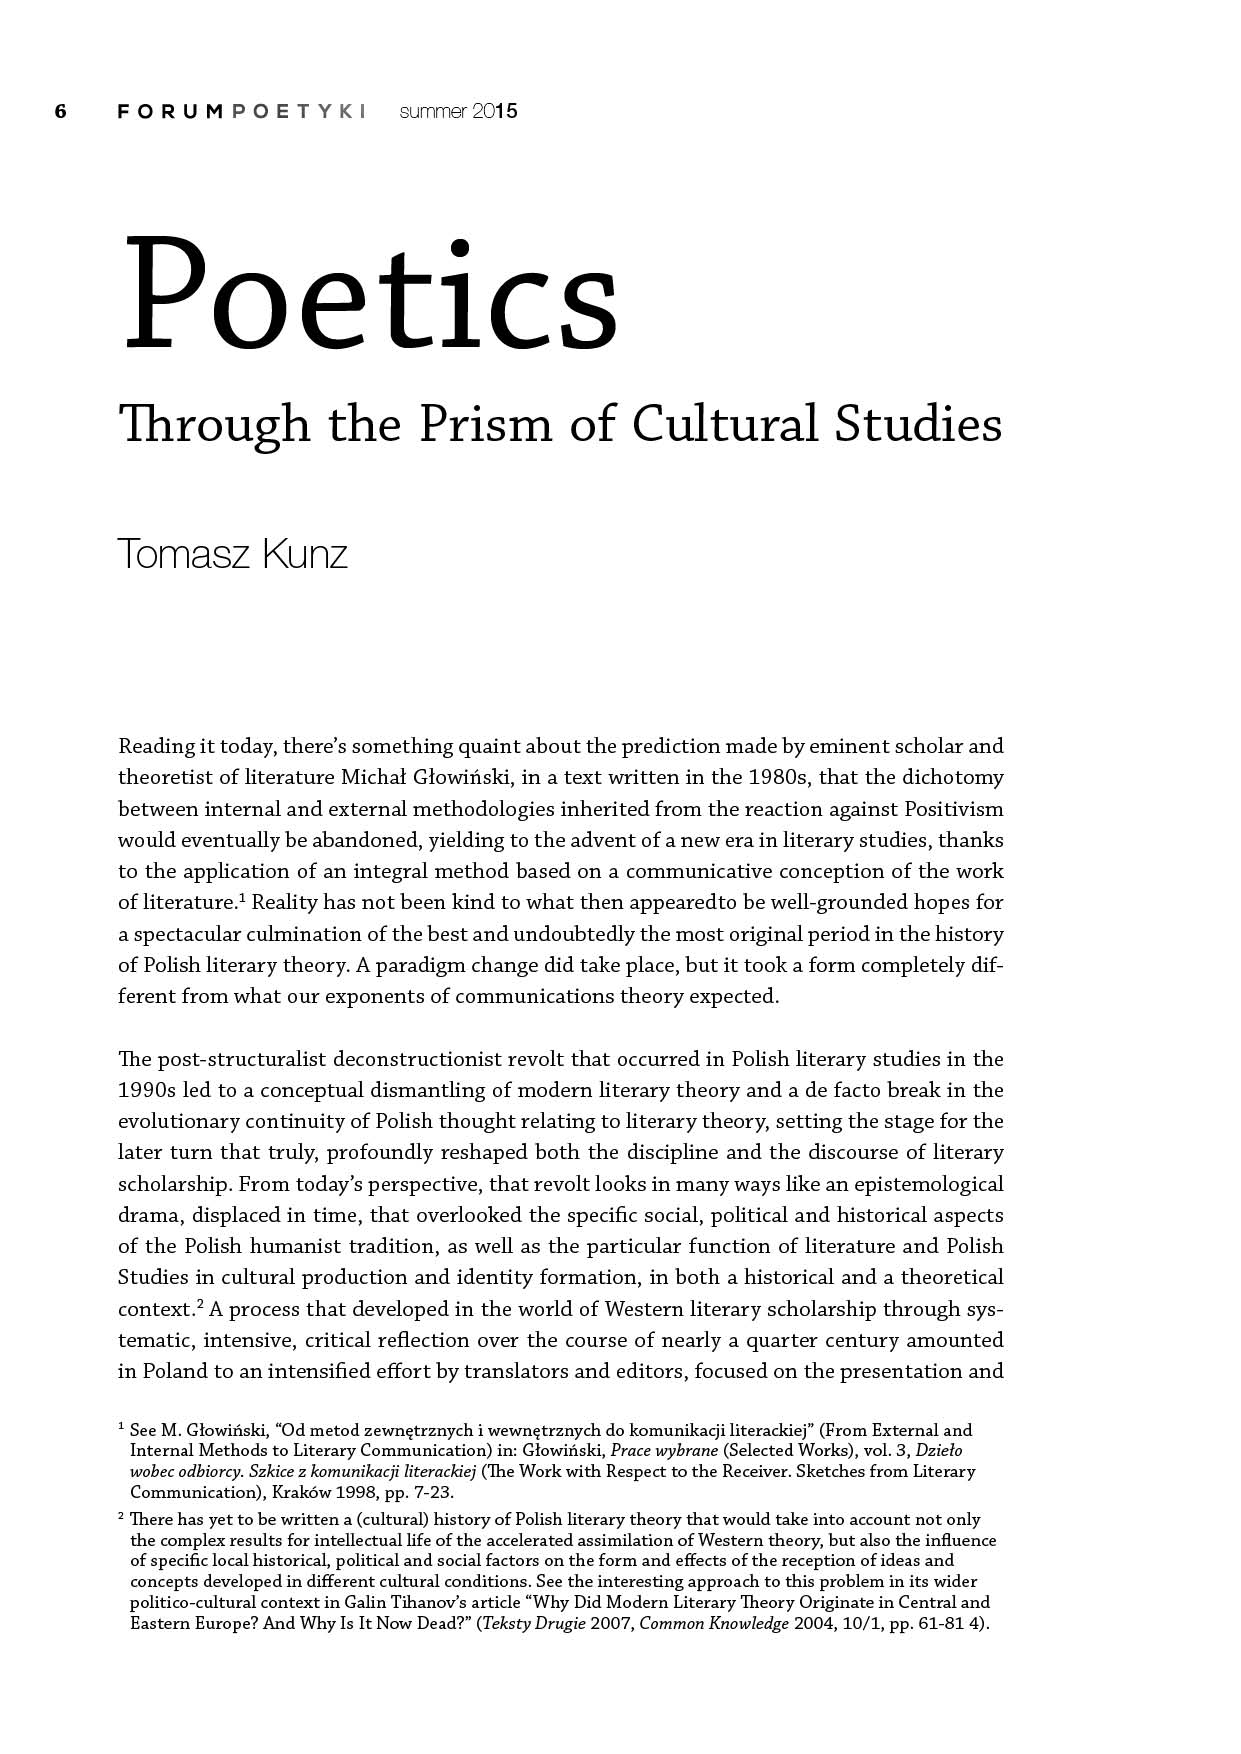 Poetics Through the Prism of Cultural Studies